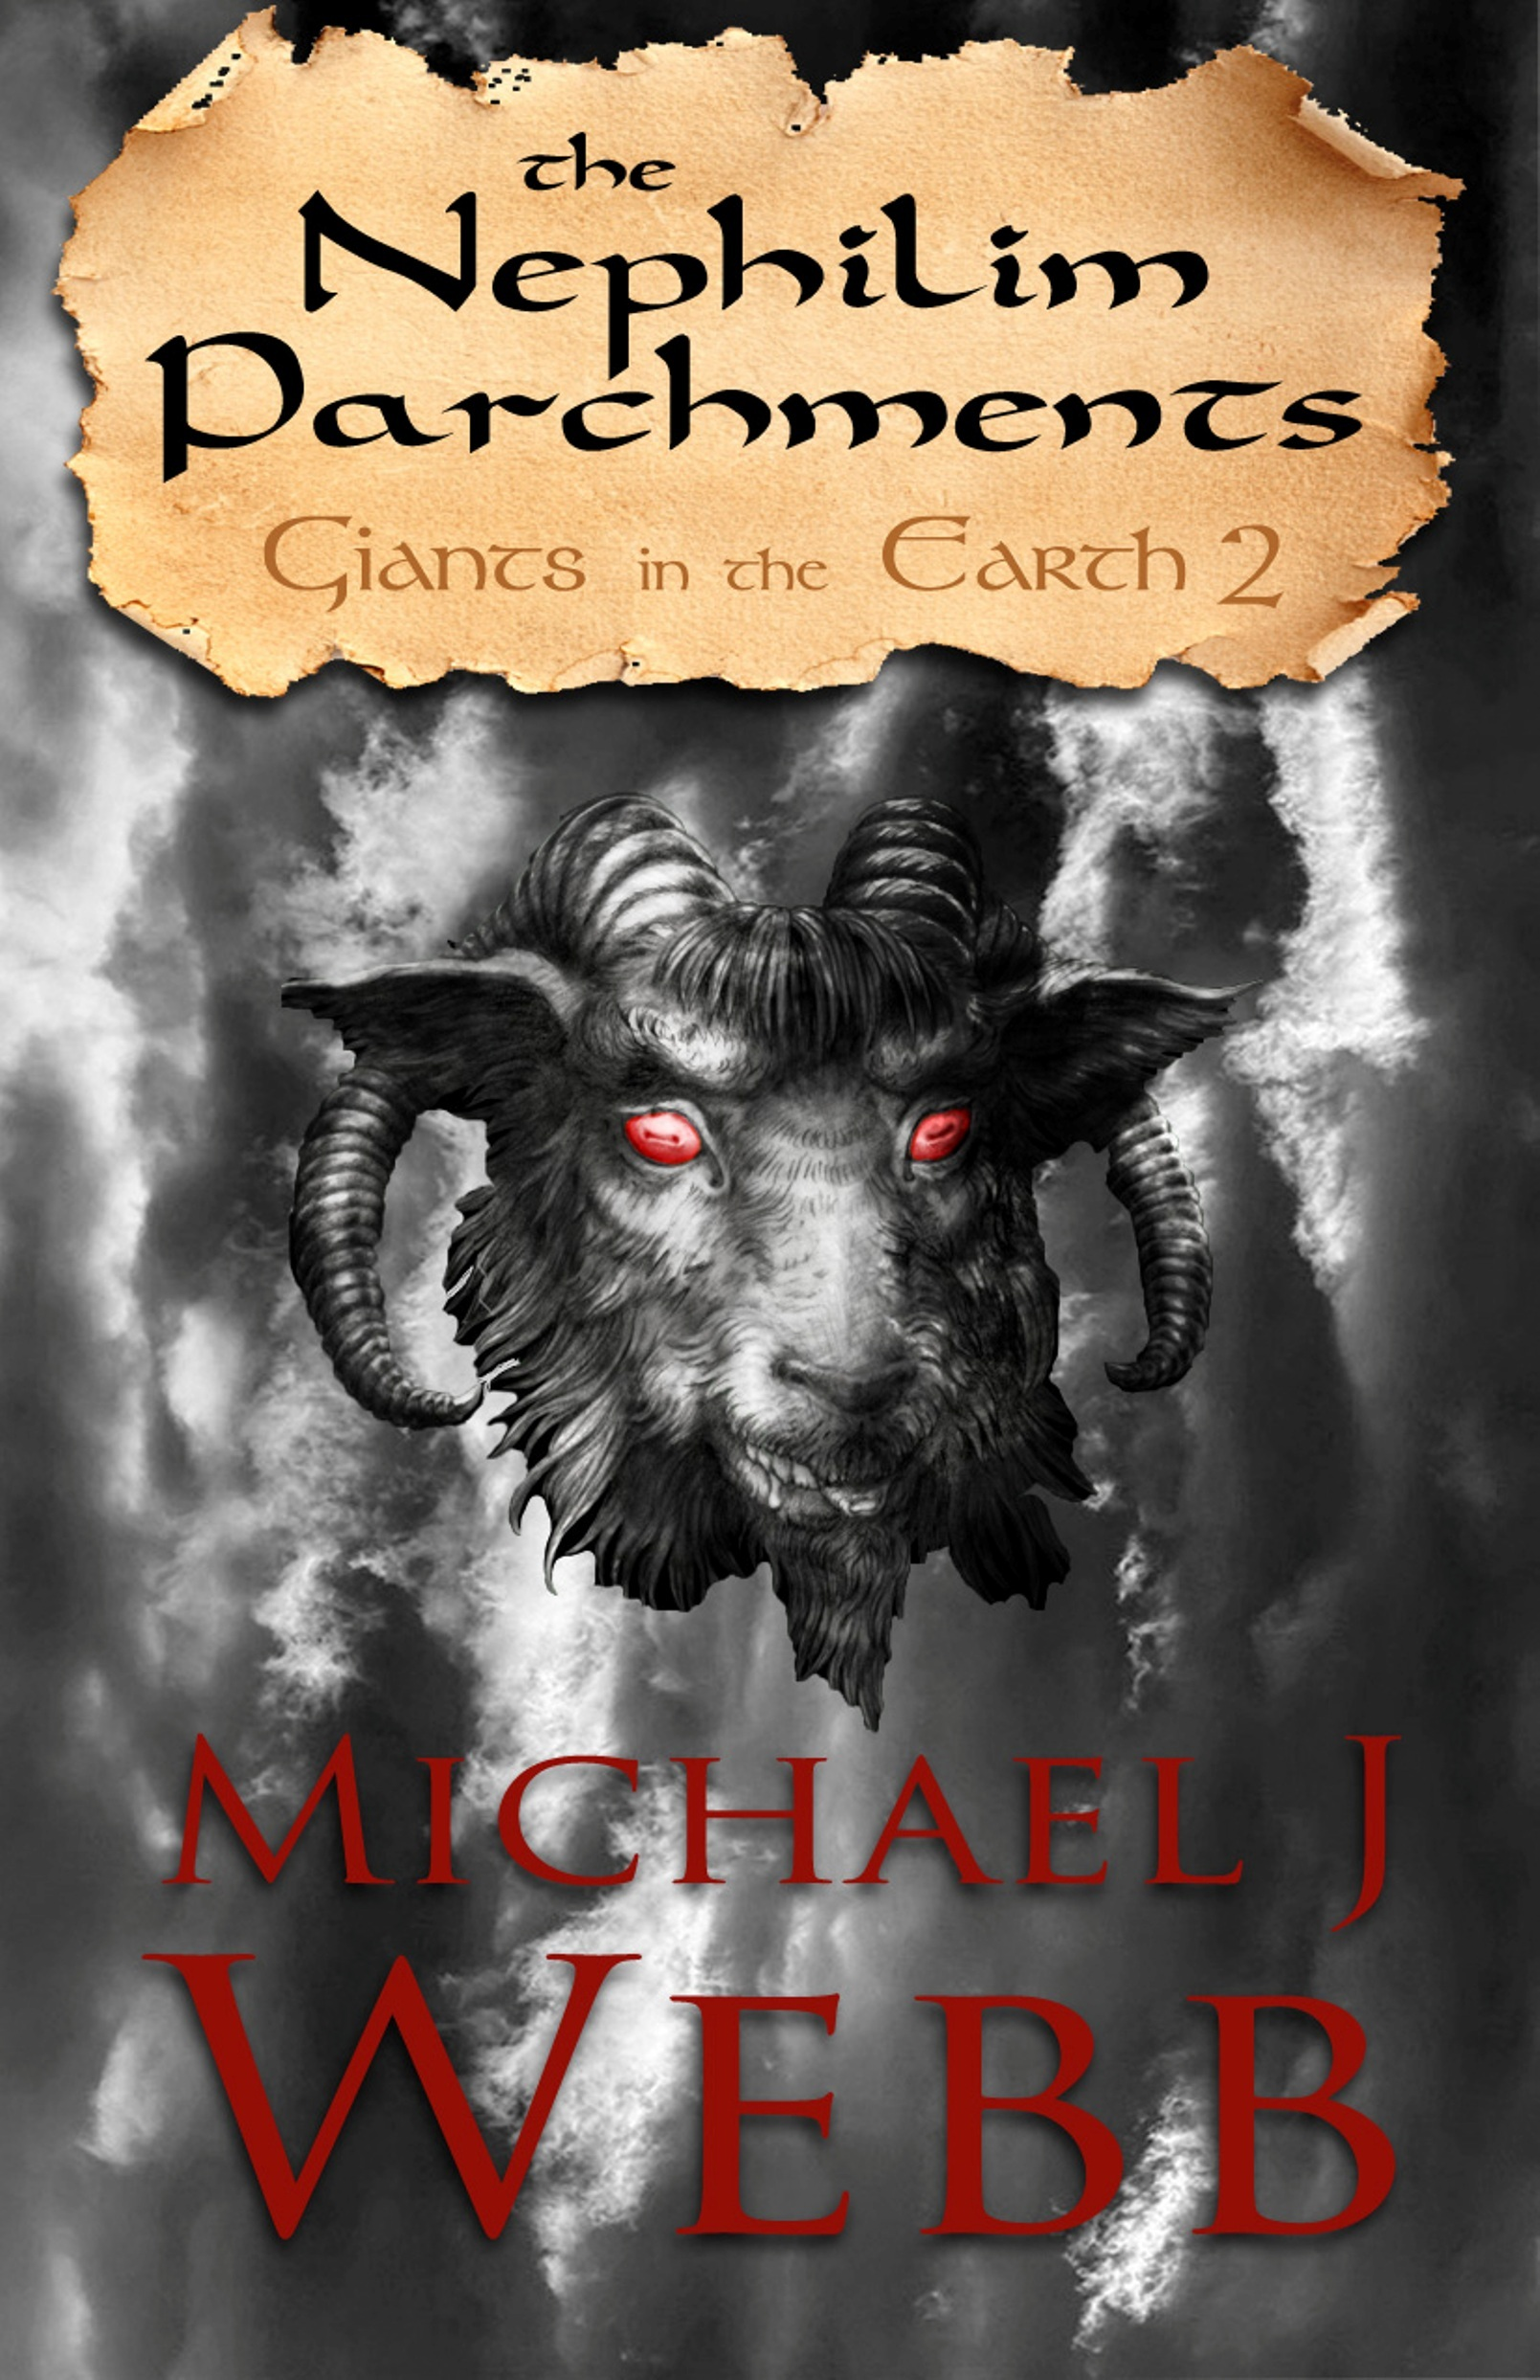 The Nephilim Parchments